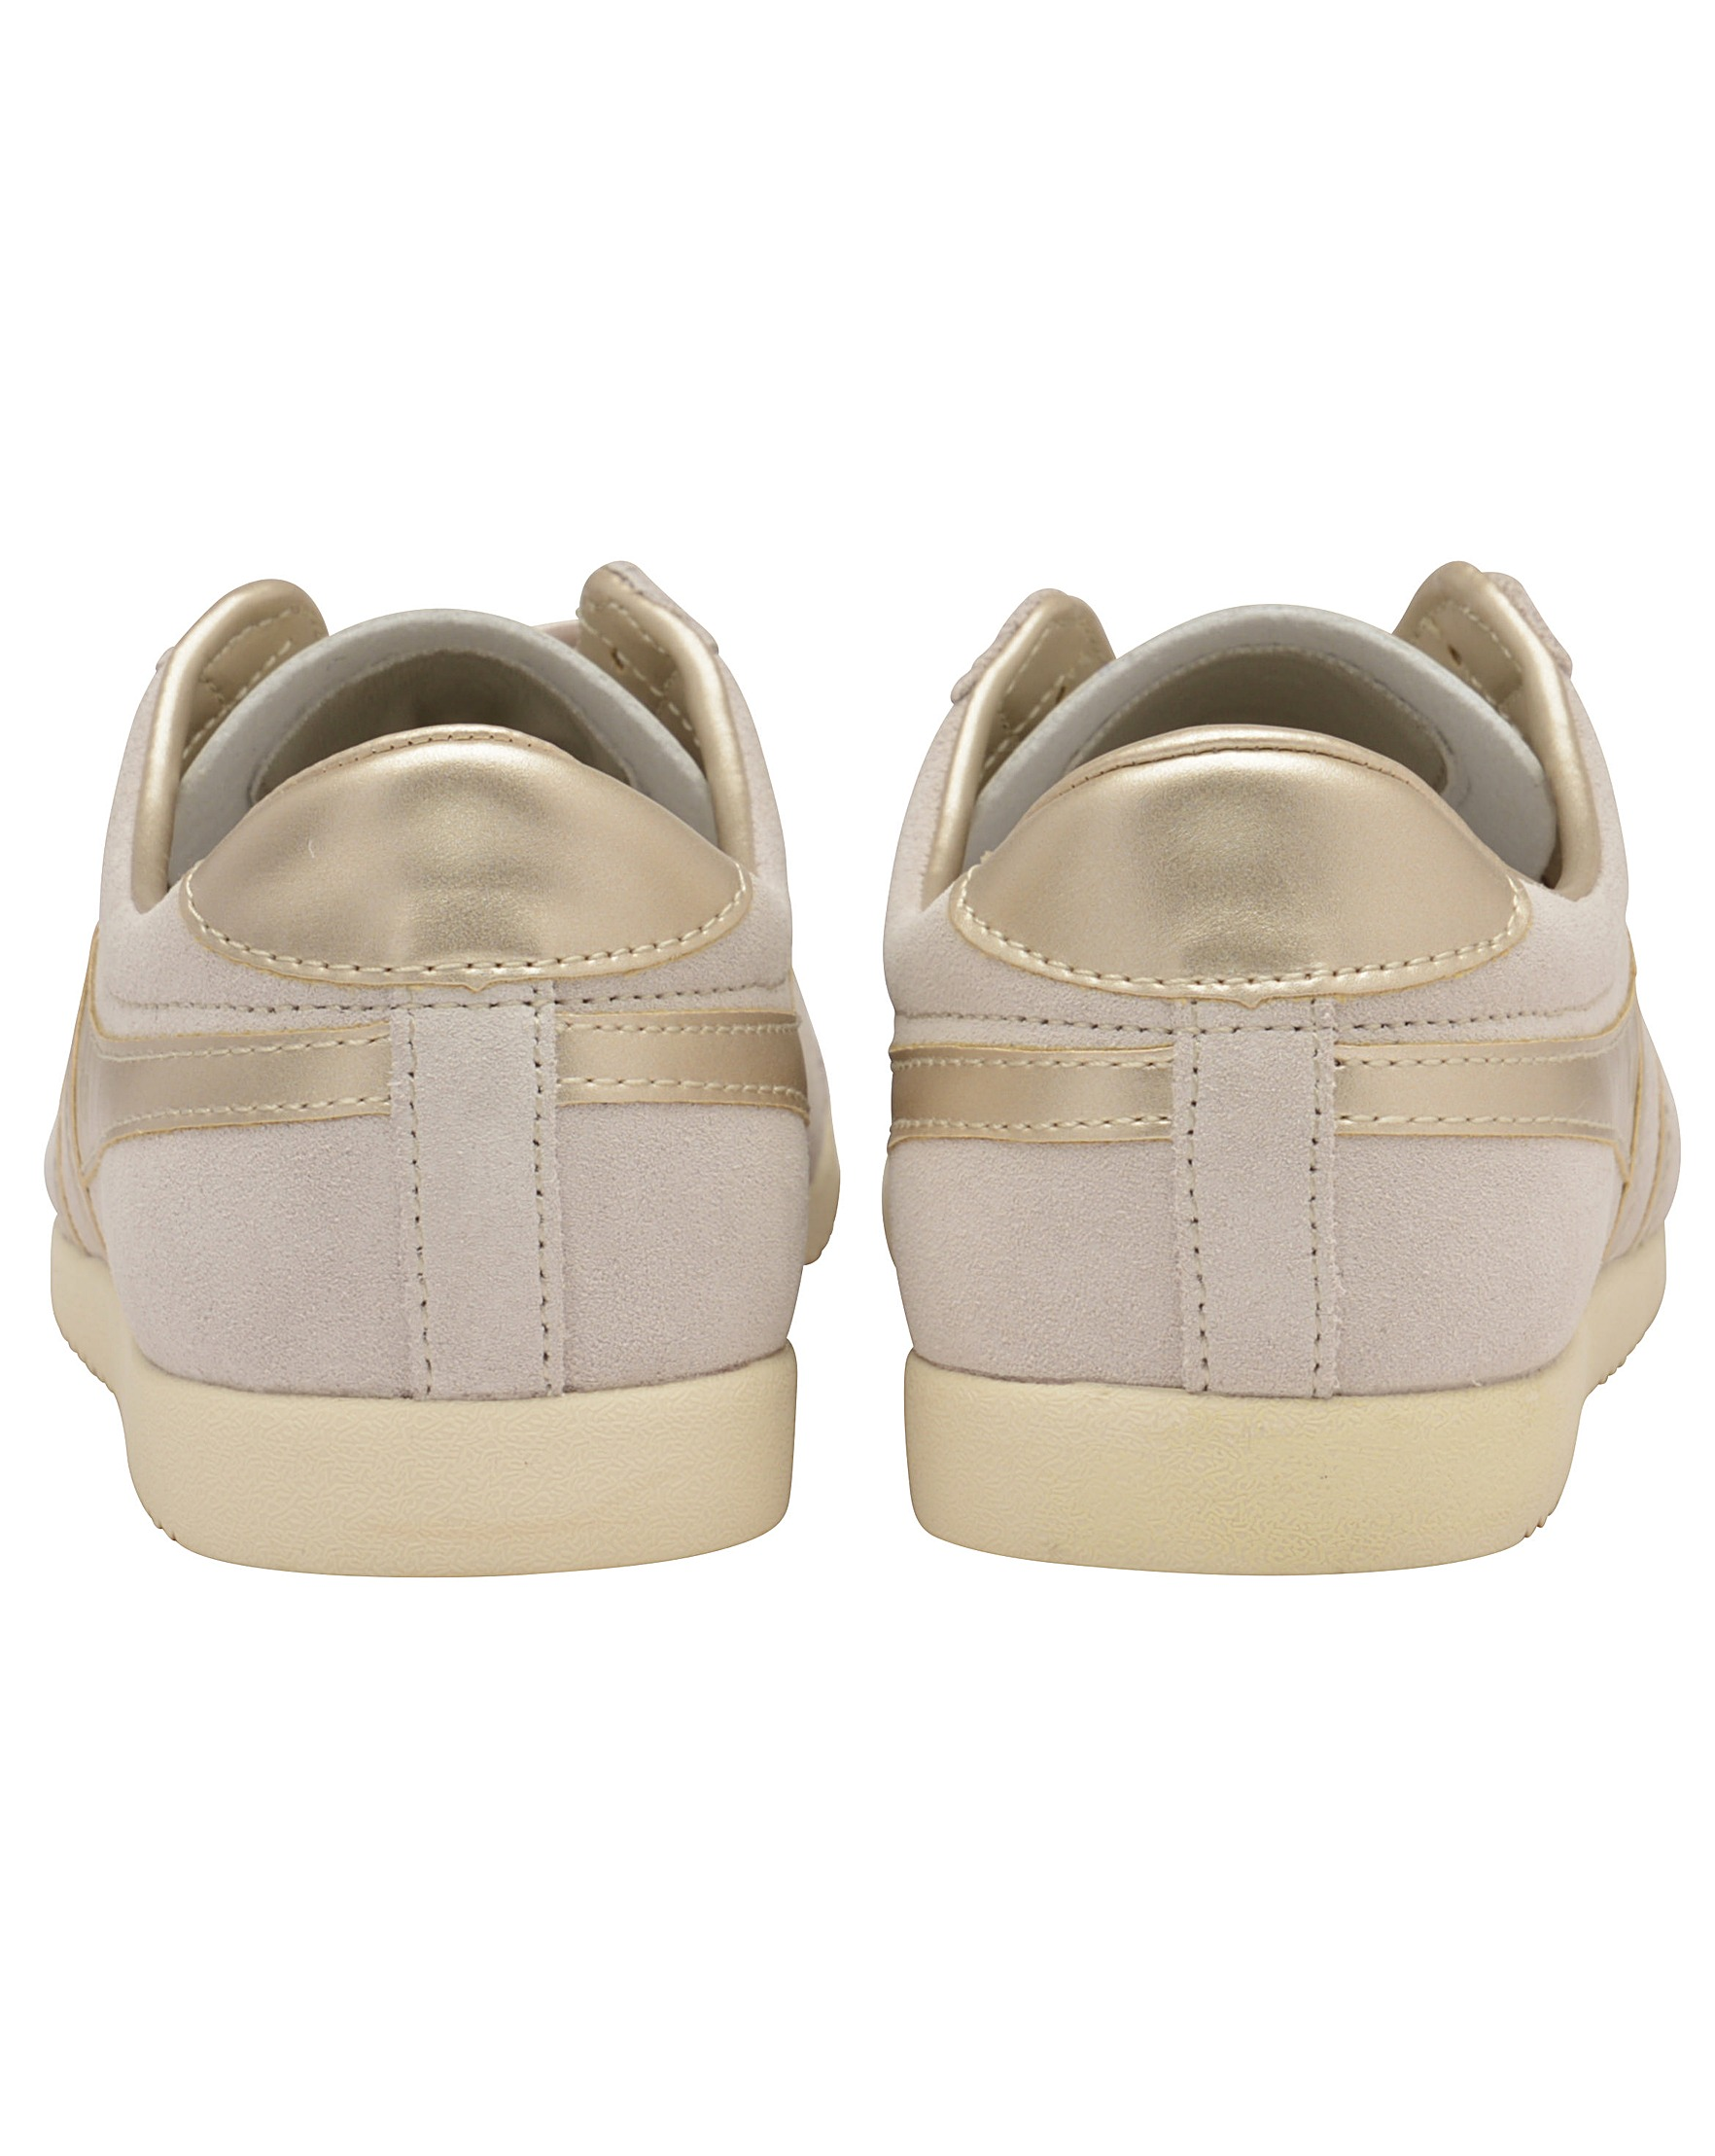 571a57b2dfb Gola Bullet Pearl ladies trainers